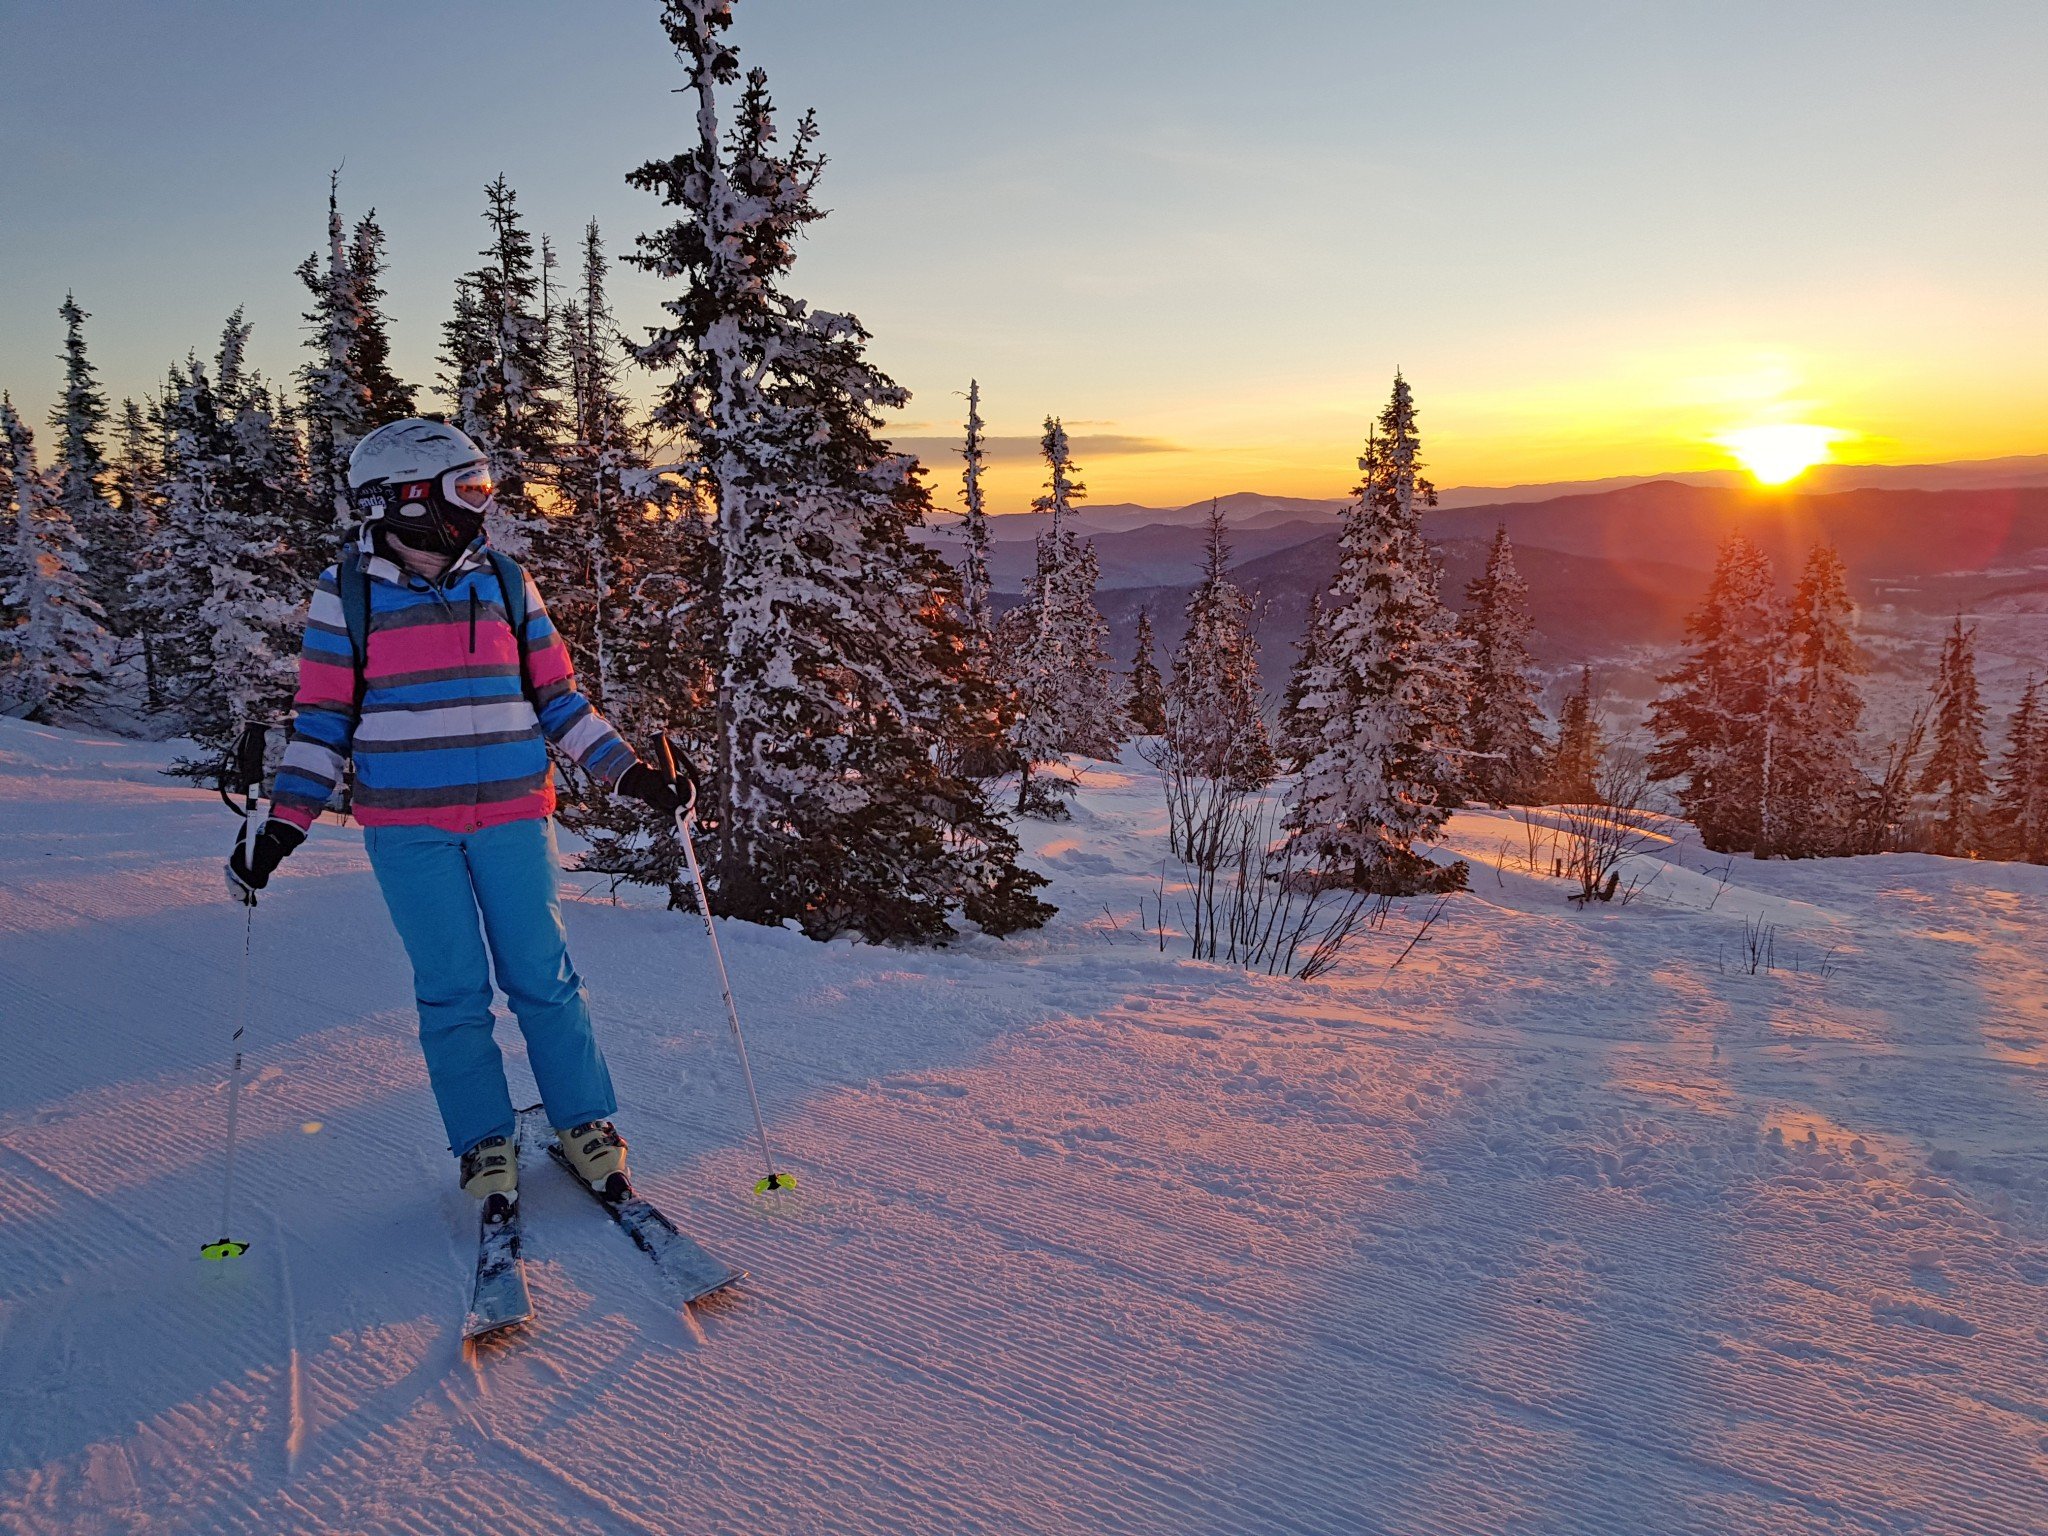 About Stories and the Sheregesh ski resort - О Сторисах и о Шерегеше